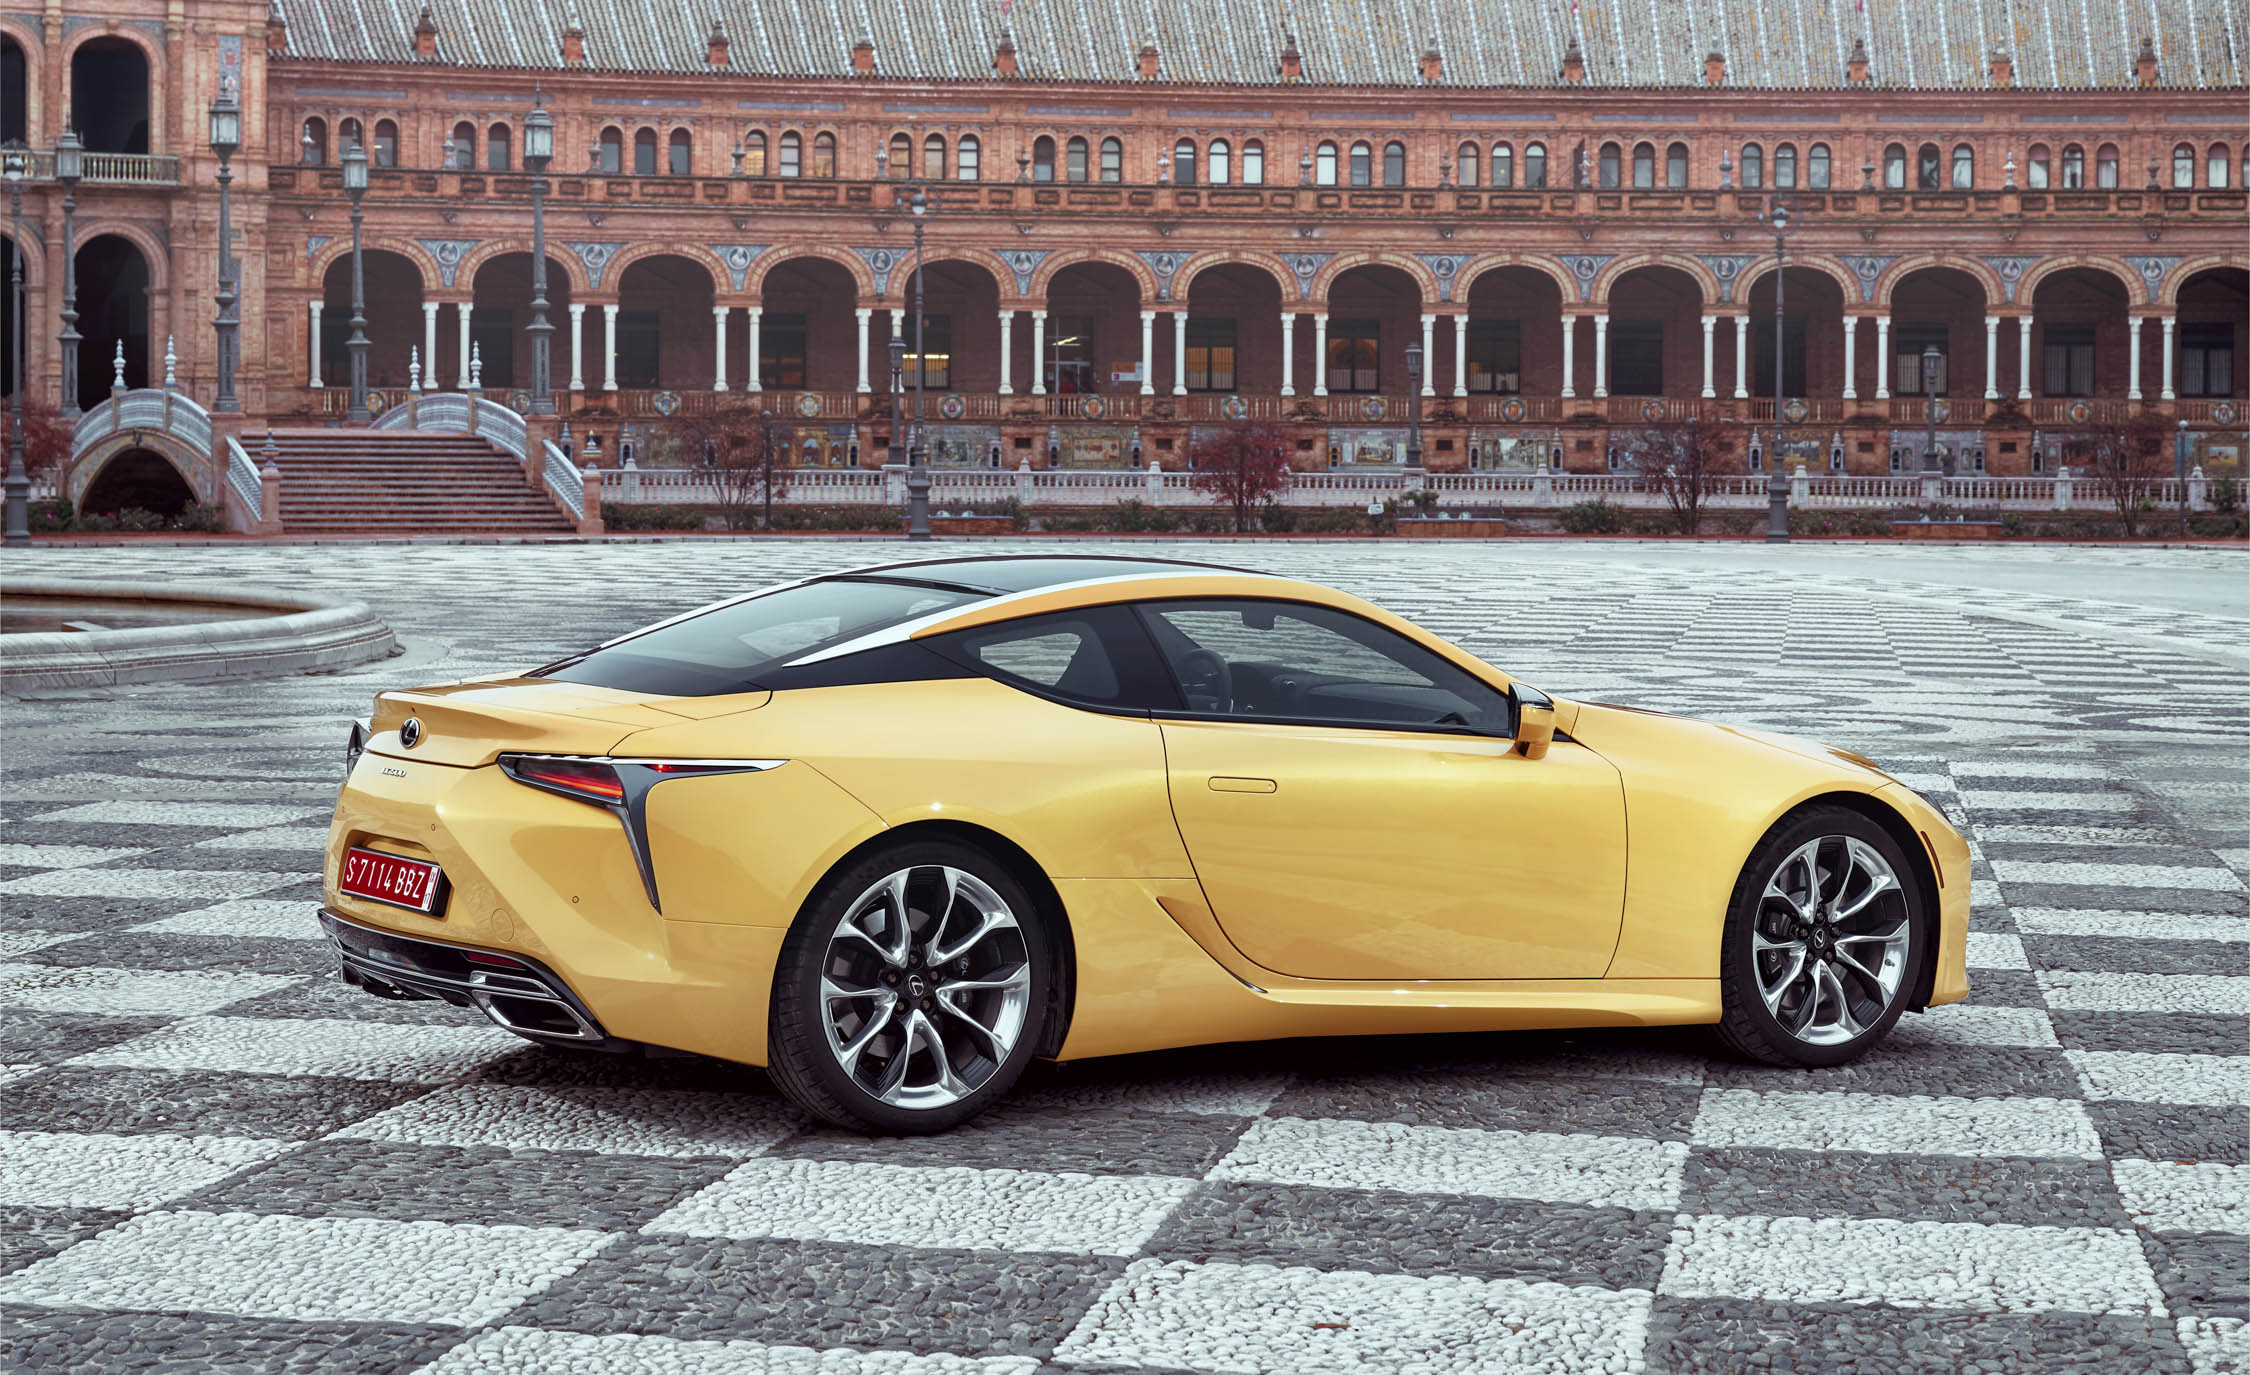 New 2018 Lexus Lc500 Exterior Side And Rear (View 83 of 84)